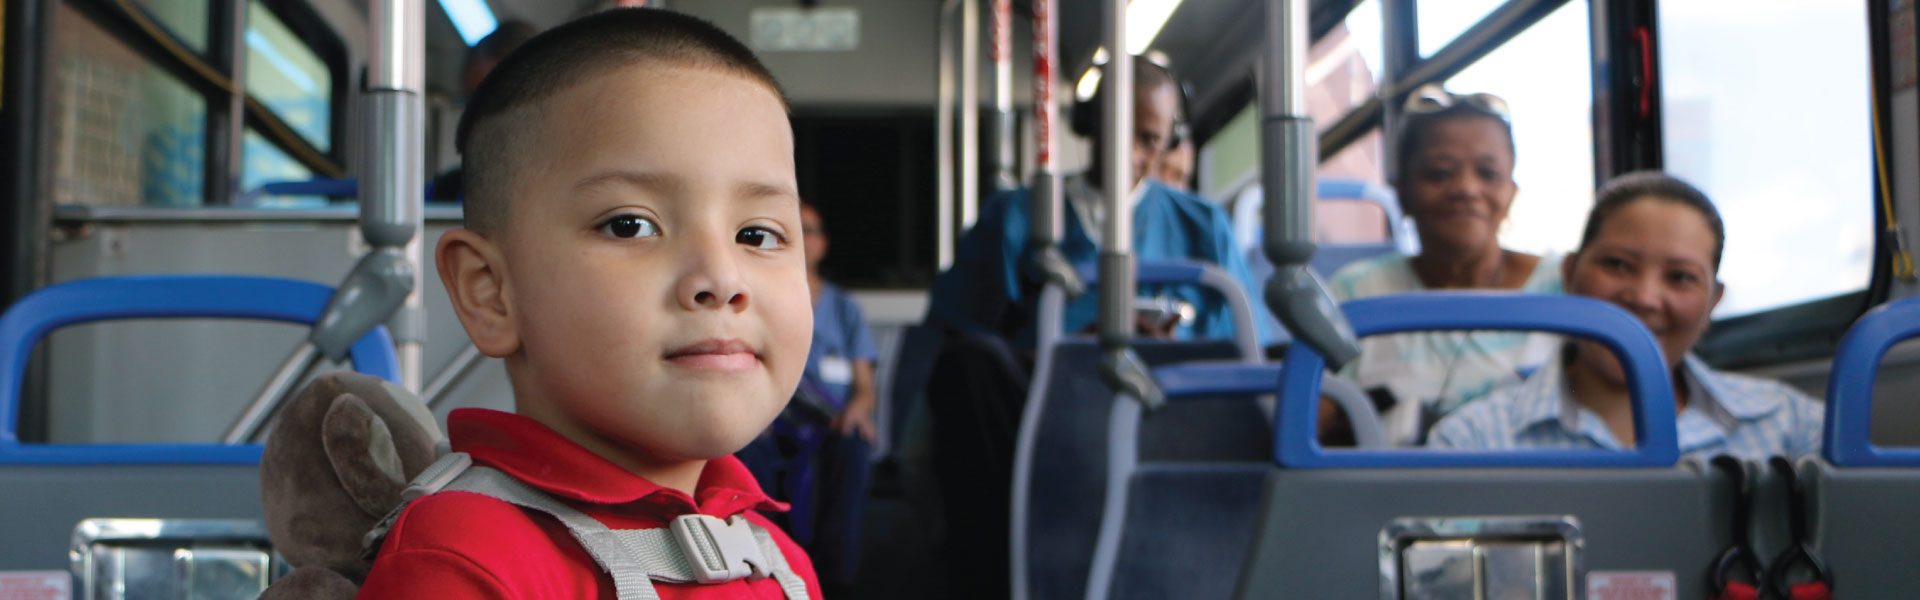 A small child standing on a bus and wearing a child harness.